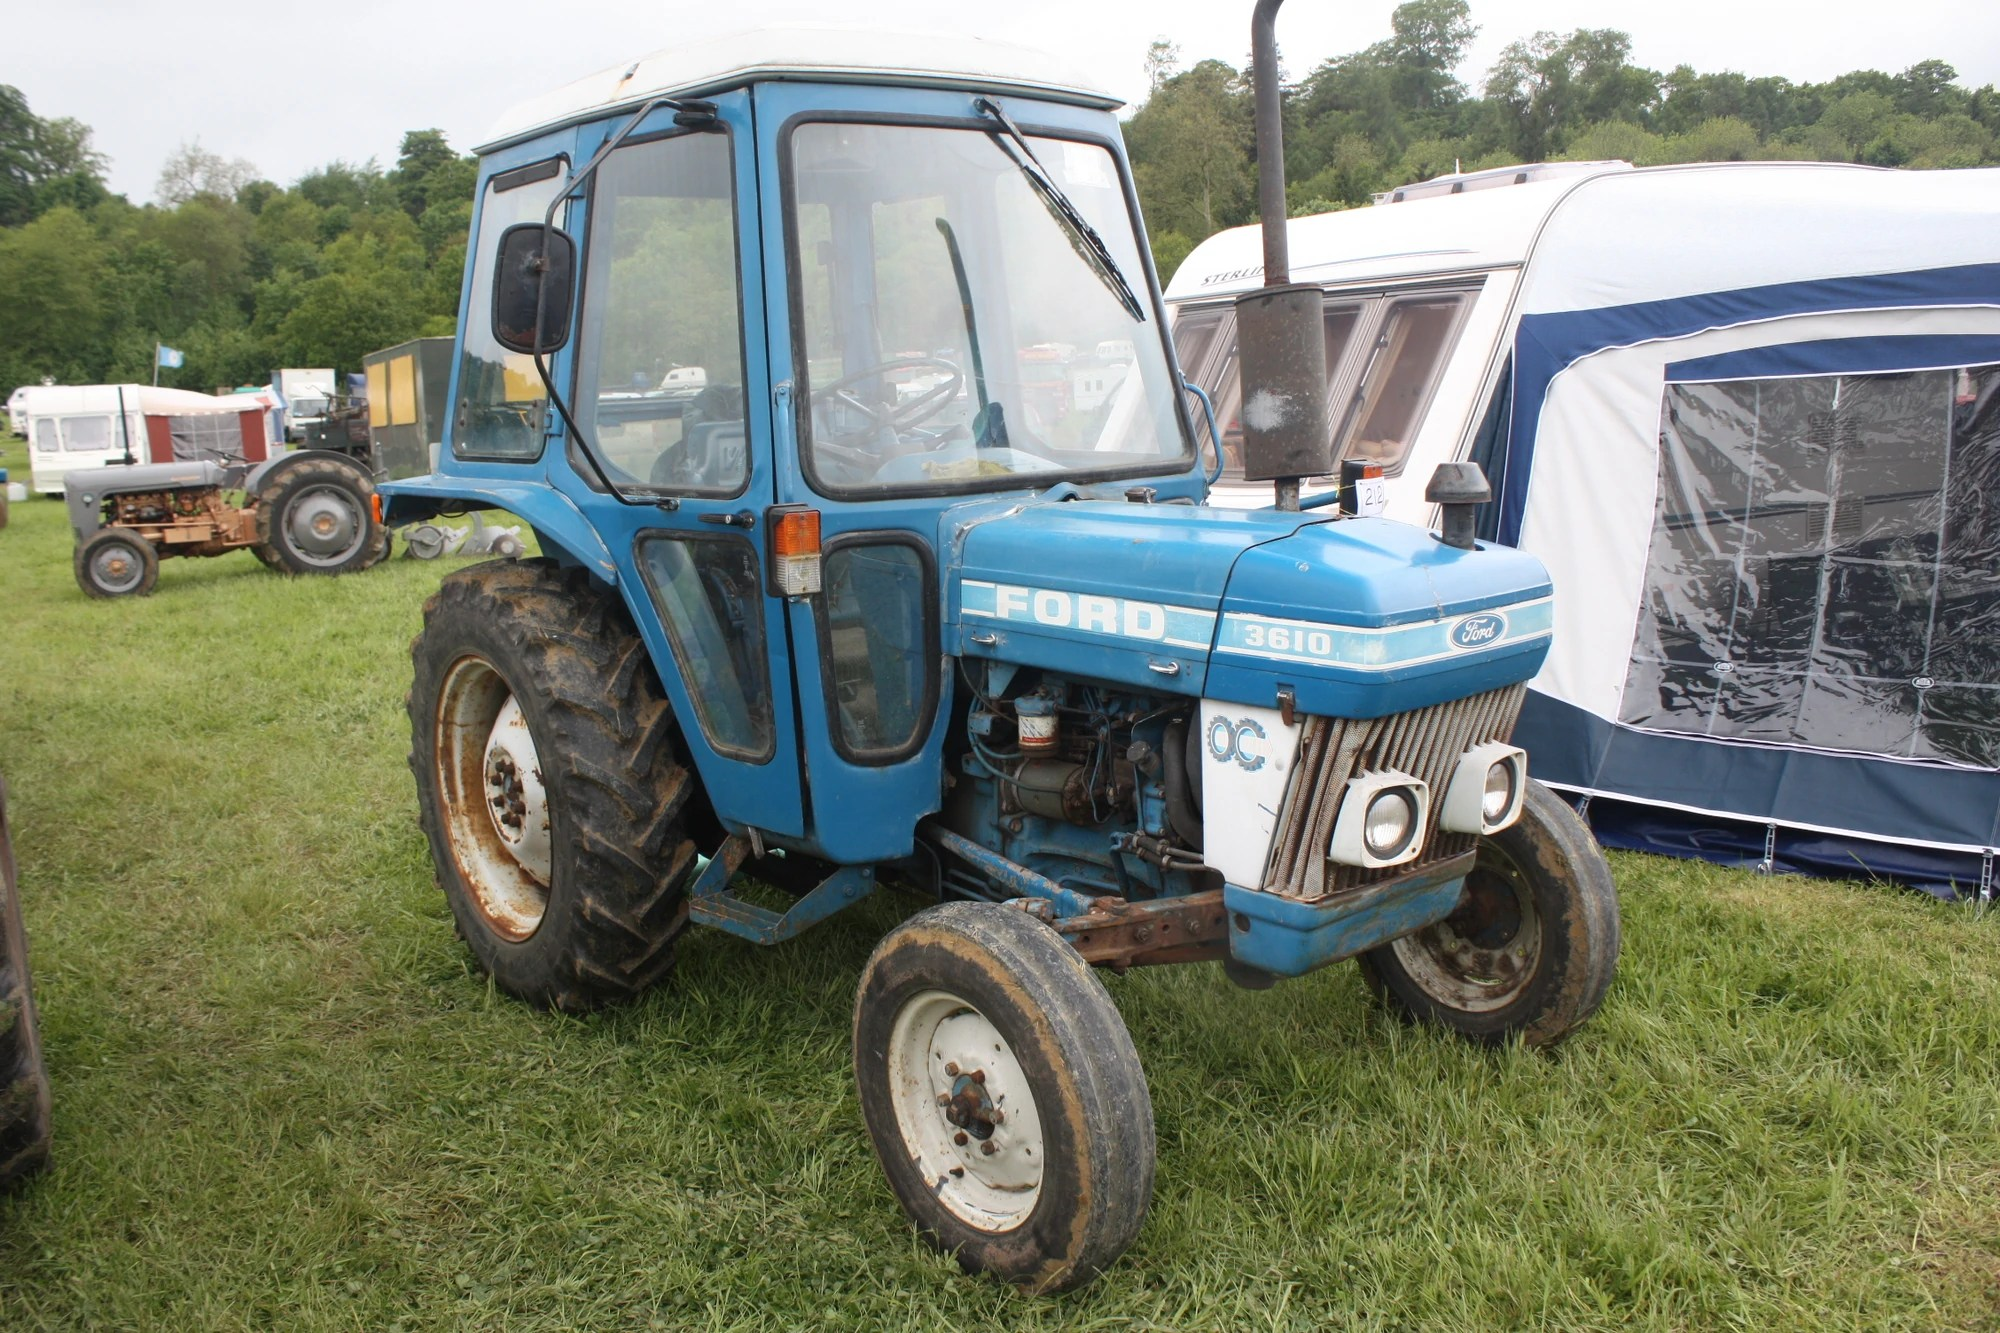 medium resolution of ford 3610 tractor construction plant wiki fandom powered by wikia ford 4000 tractor wiring diagram ford tractor 3610 wiring harness